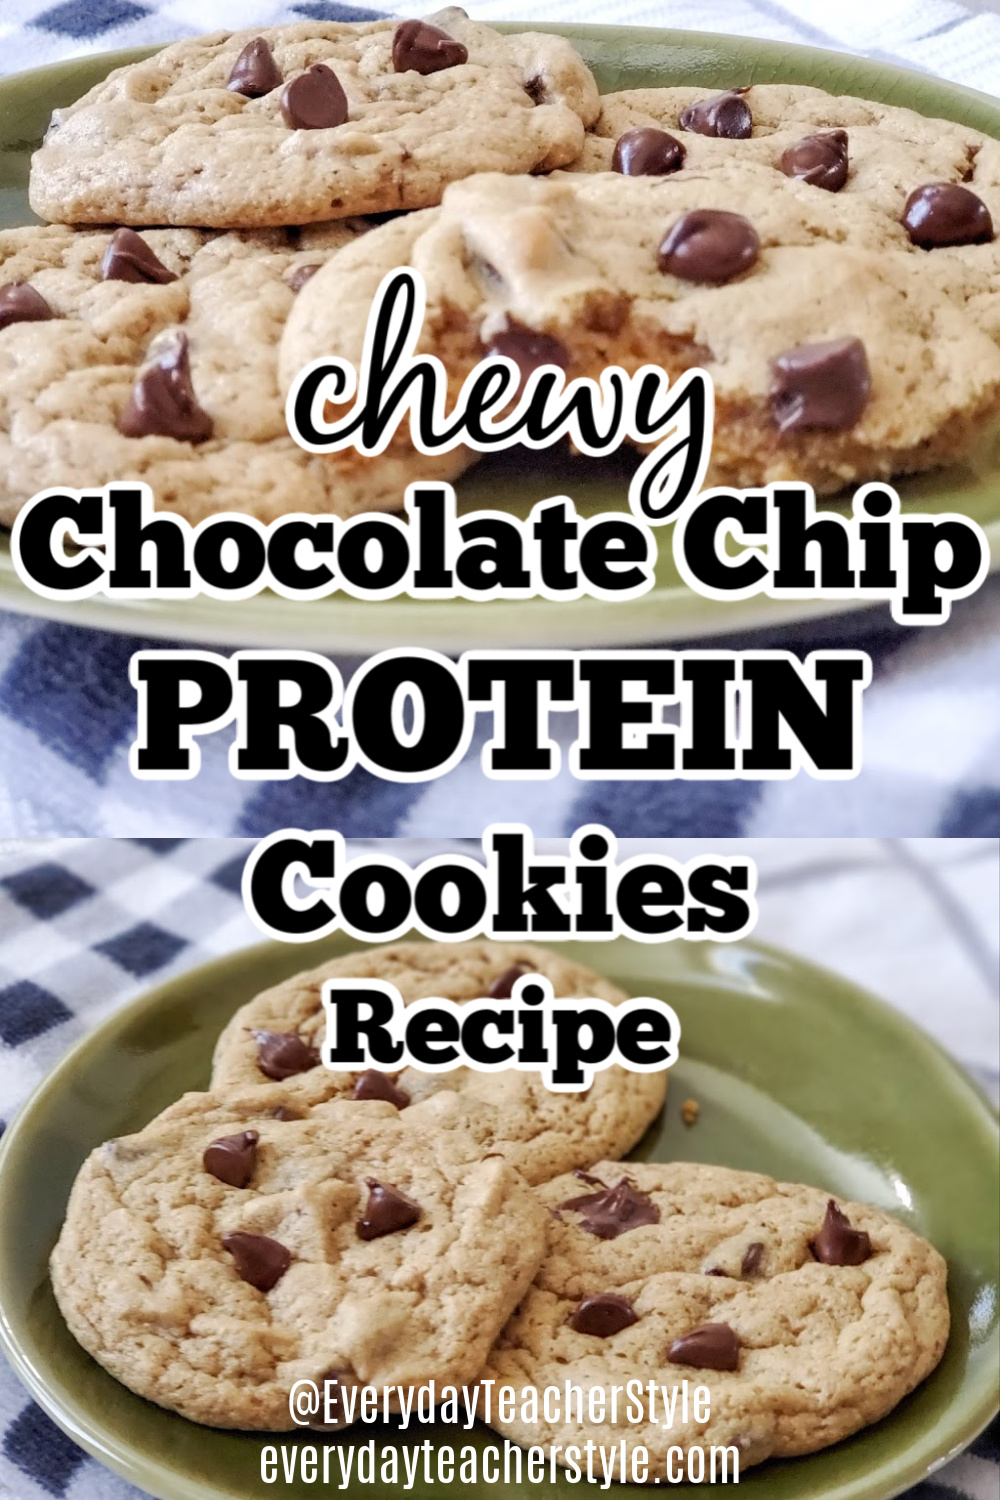 Everyday Teacher Style Chewy Chocolate Chip Cookie Recipe image